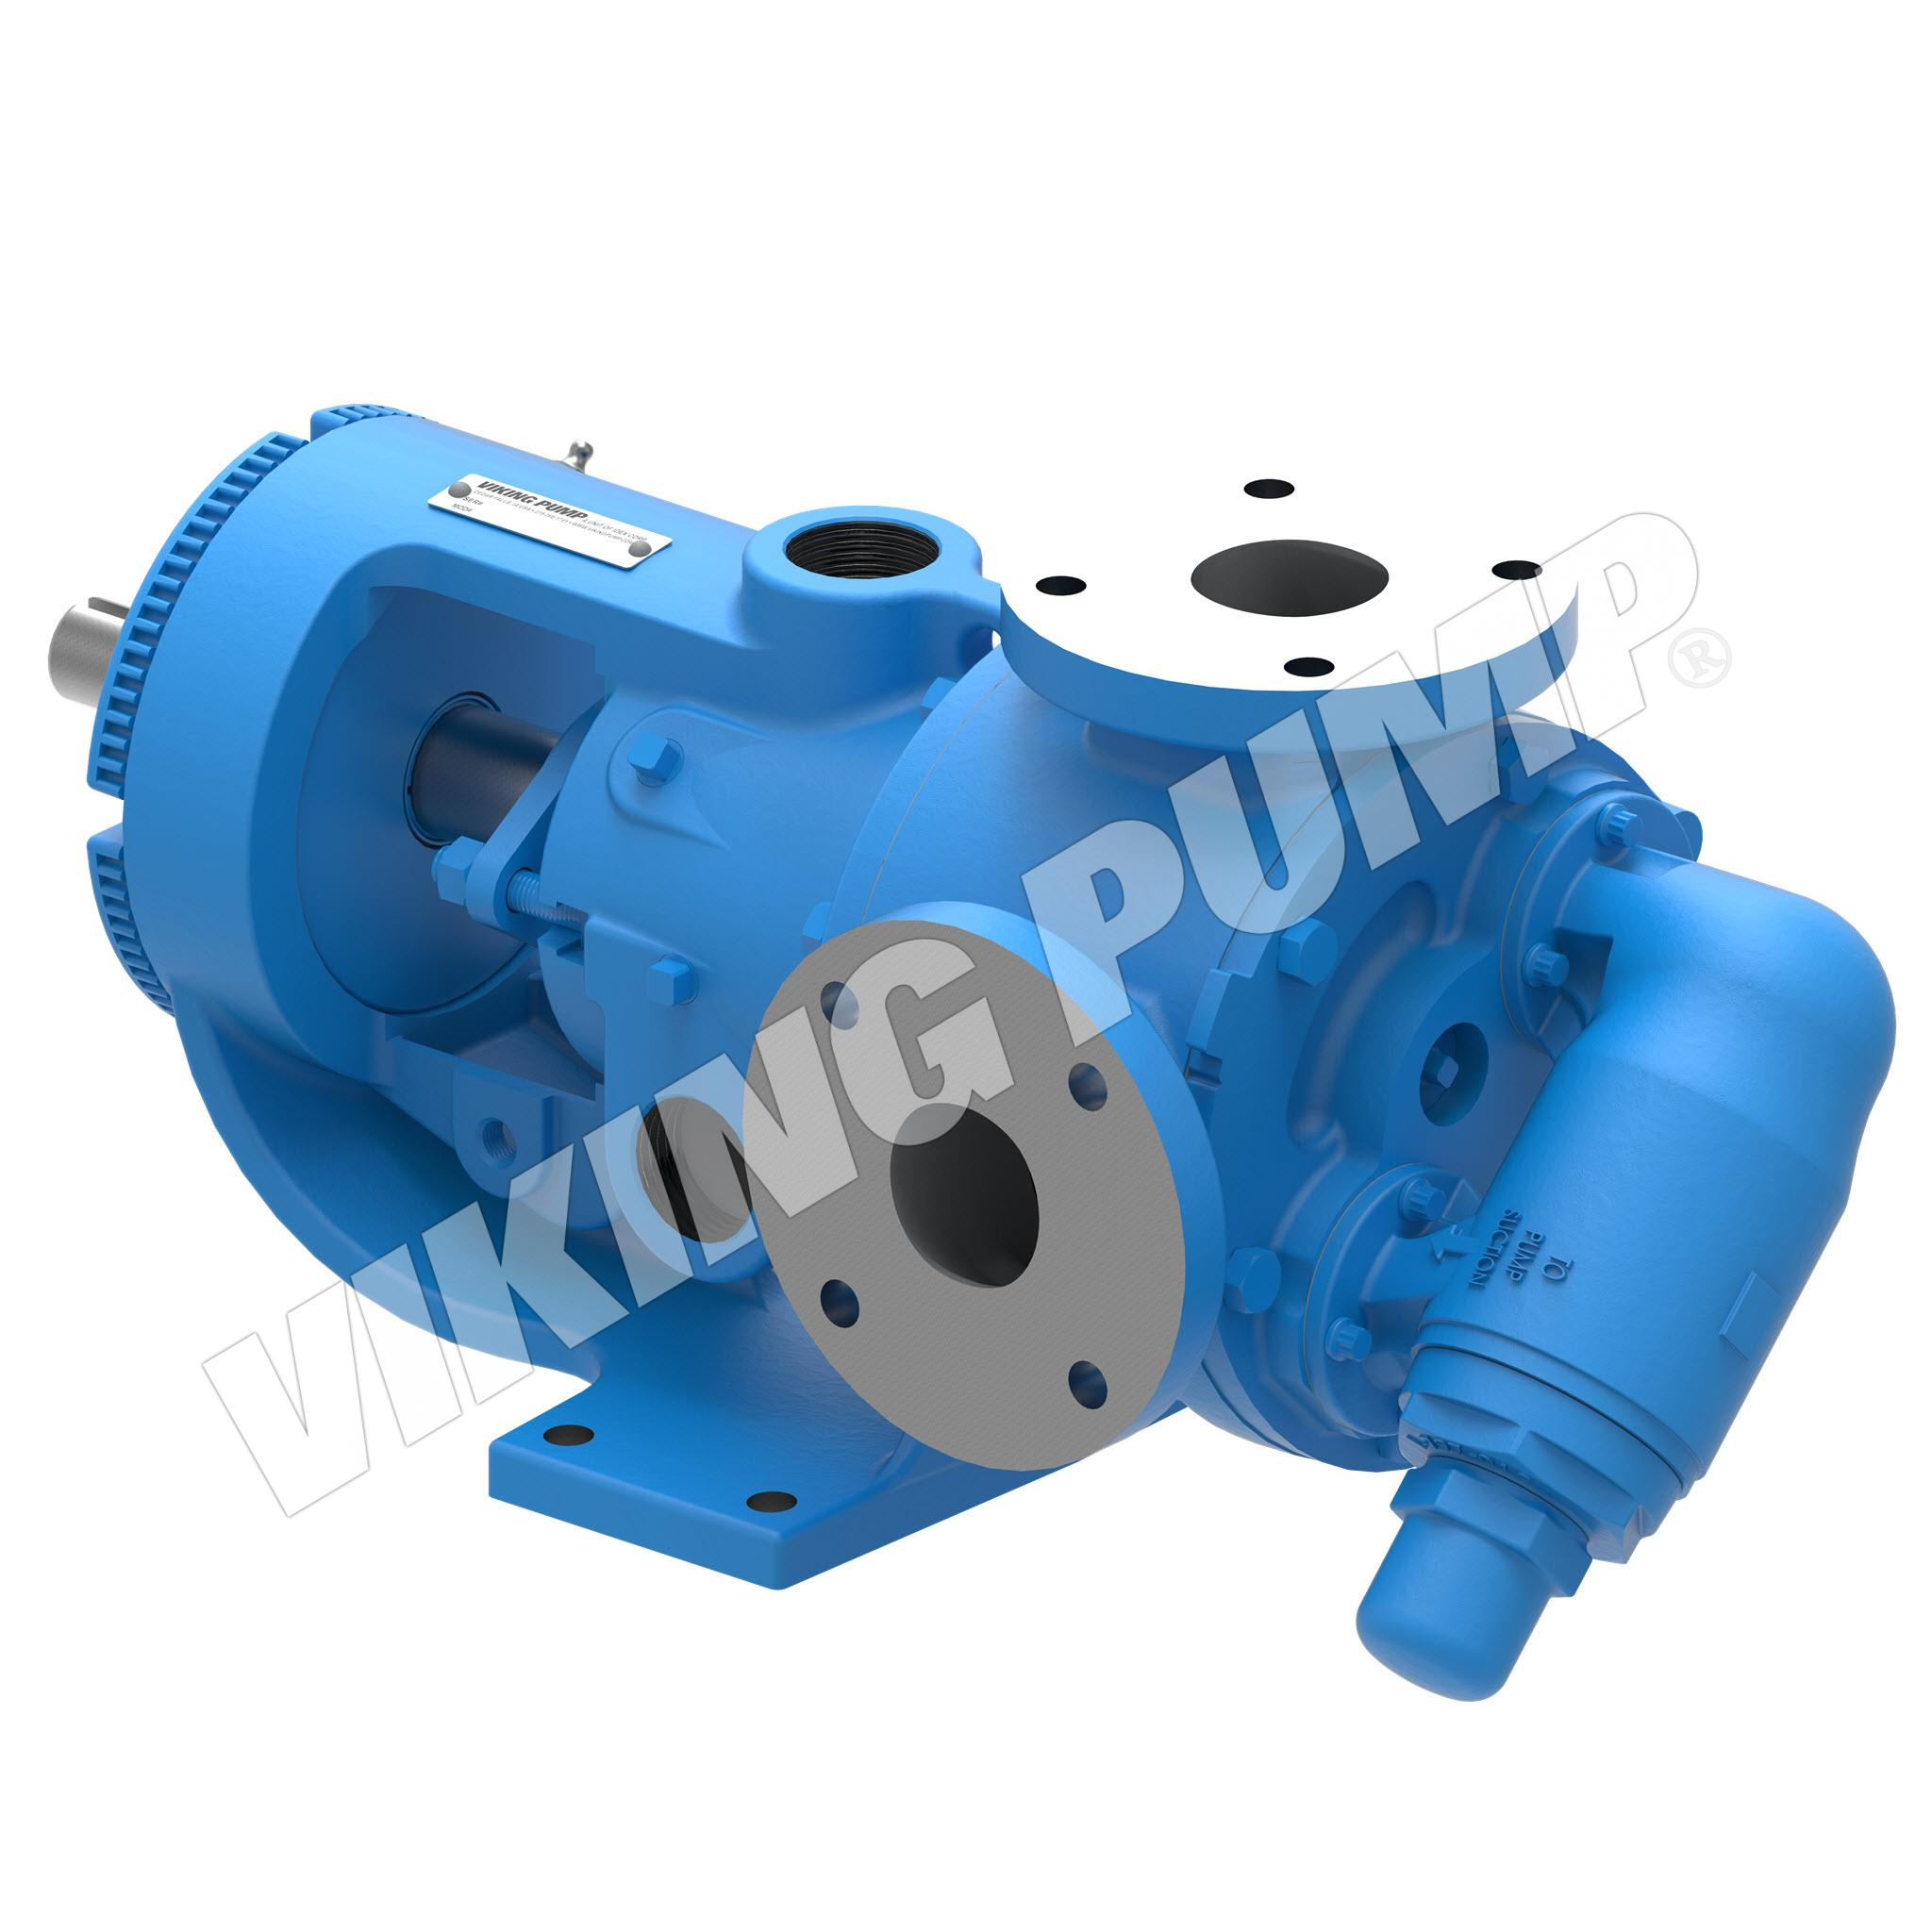 Model K4224A, Foot Mounted, Mechanical Seal Pump w/Optional Relief Valve